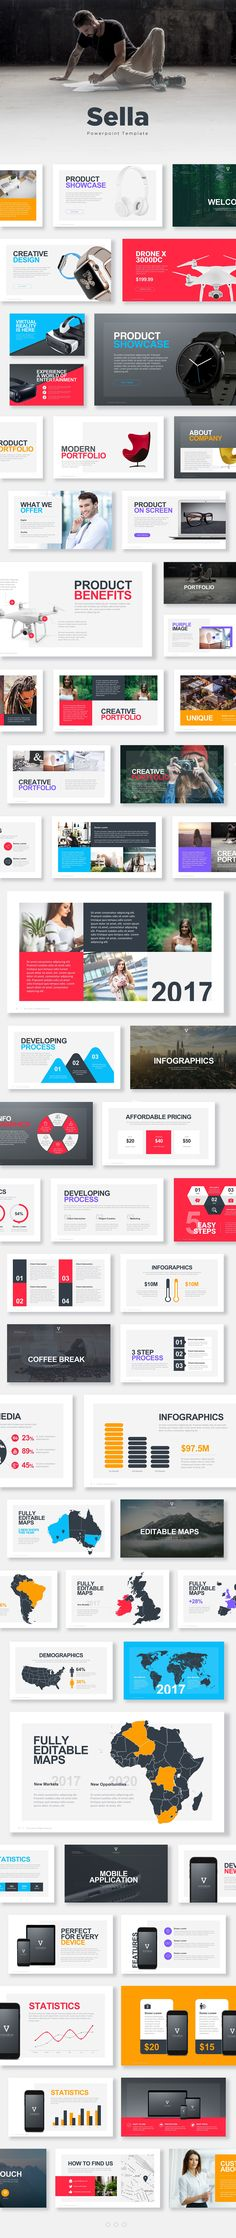 3 In 1 Business Bundle - Keynote Pack Changu0027e 3 and Business - trivia powerpoint template